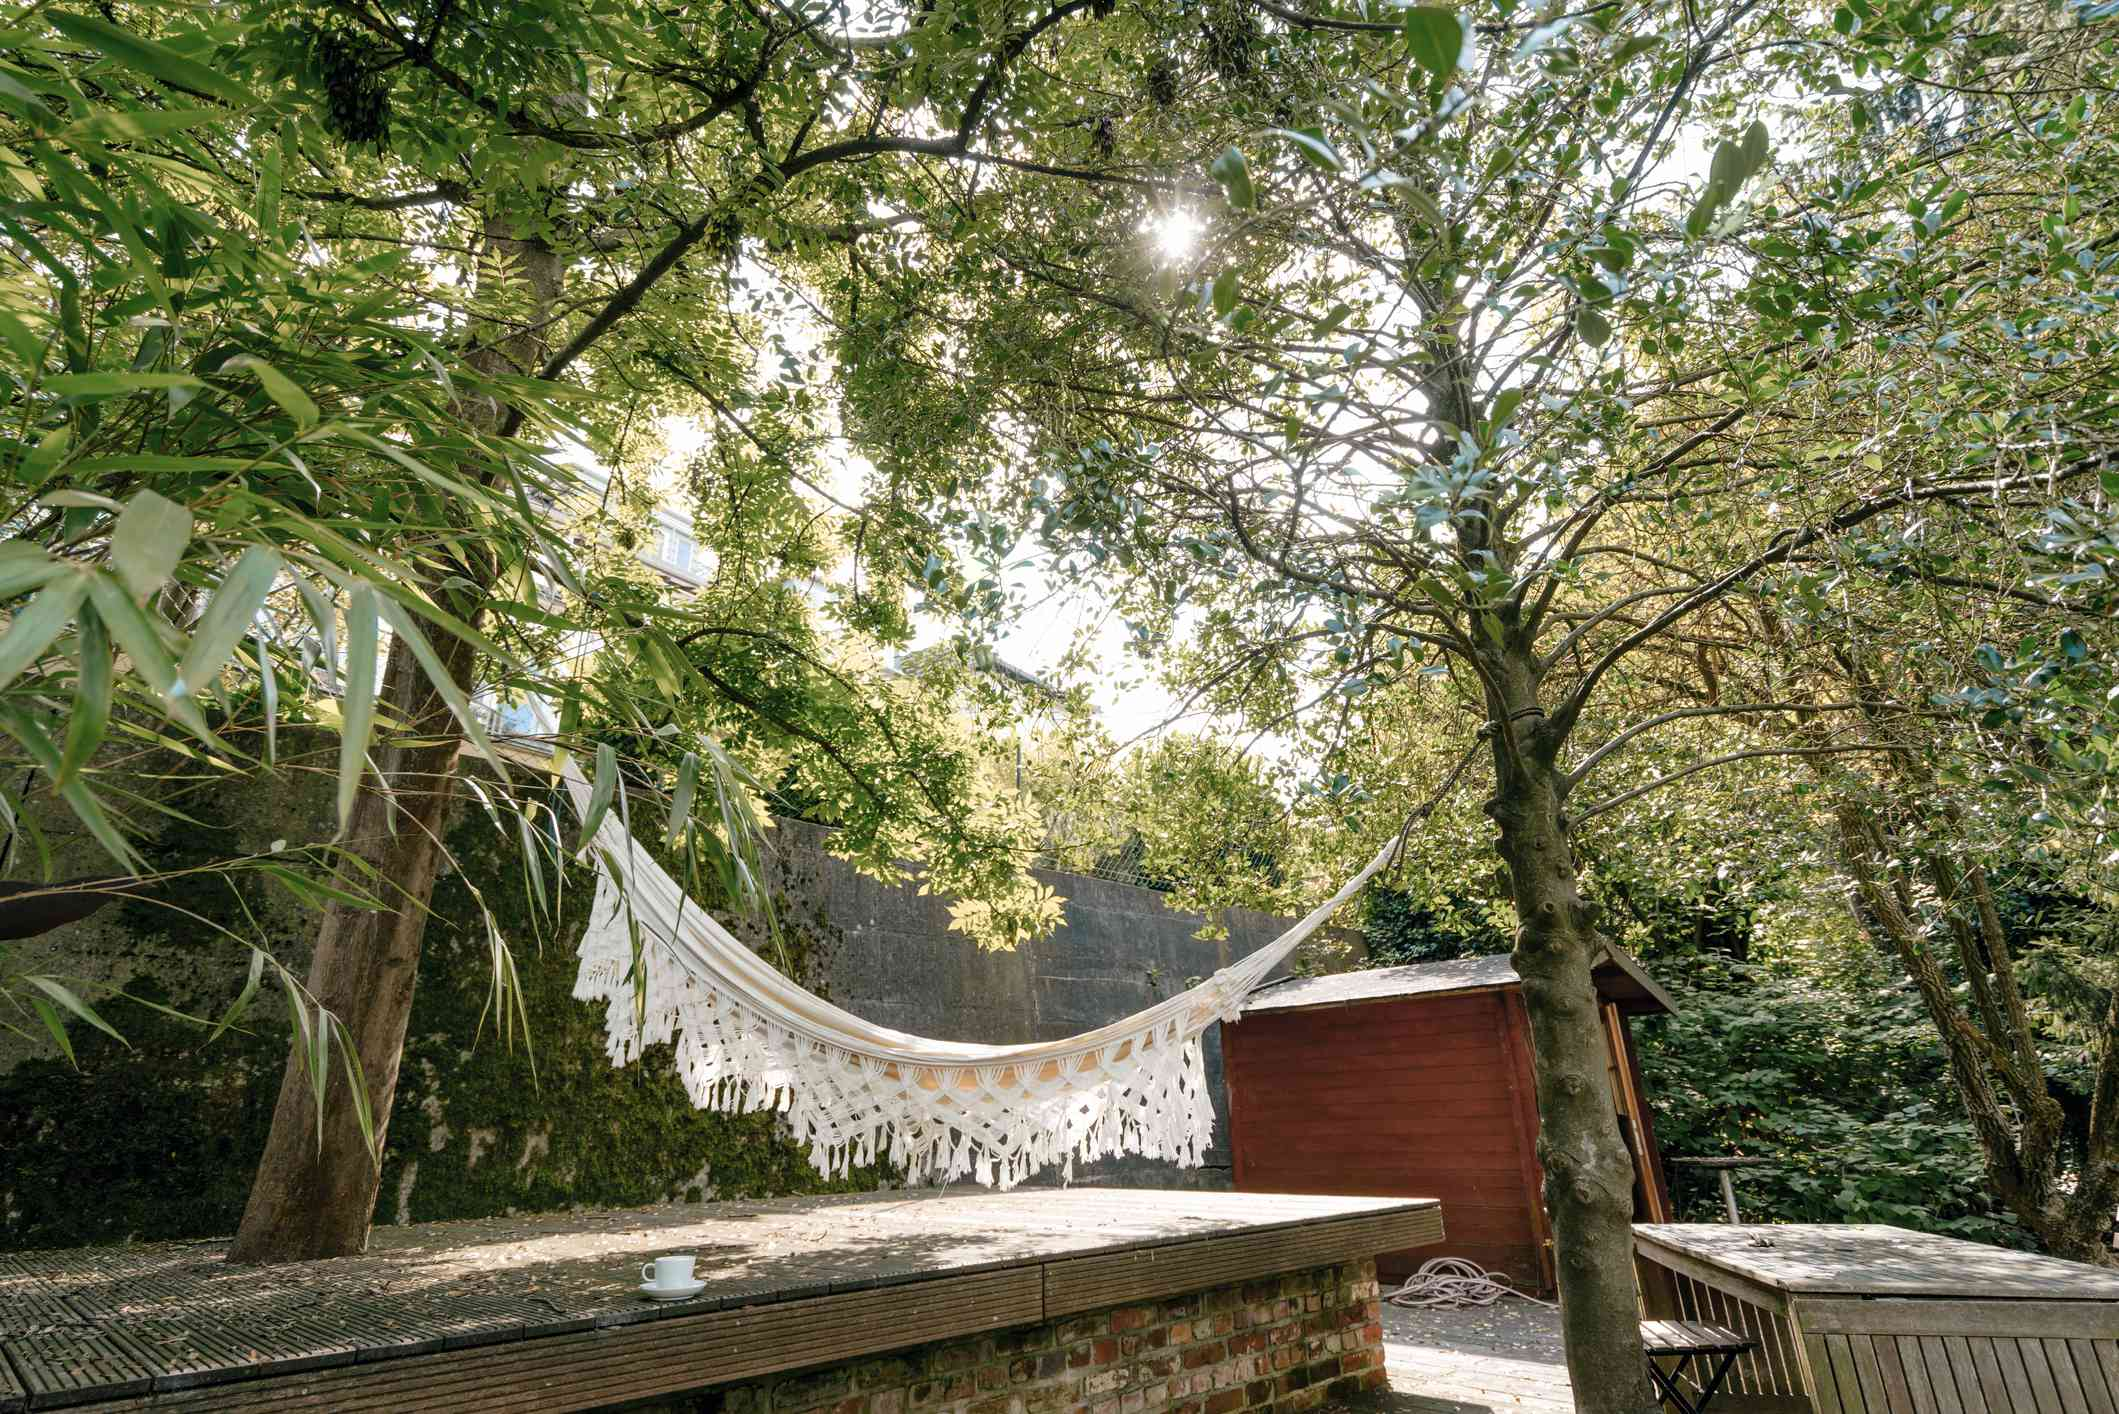 A hammock hanging between two trees.